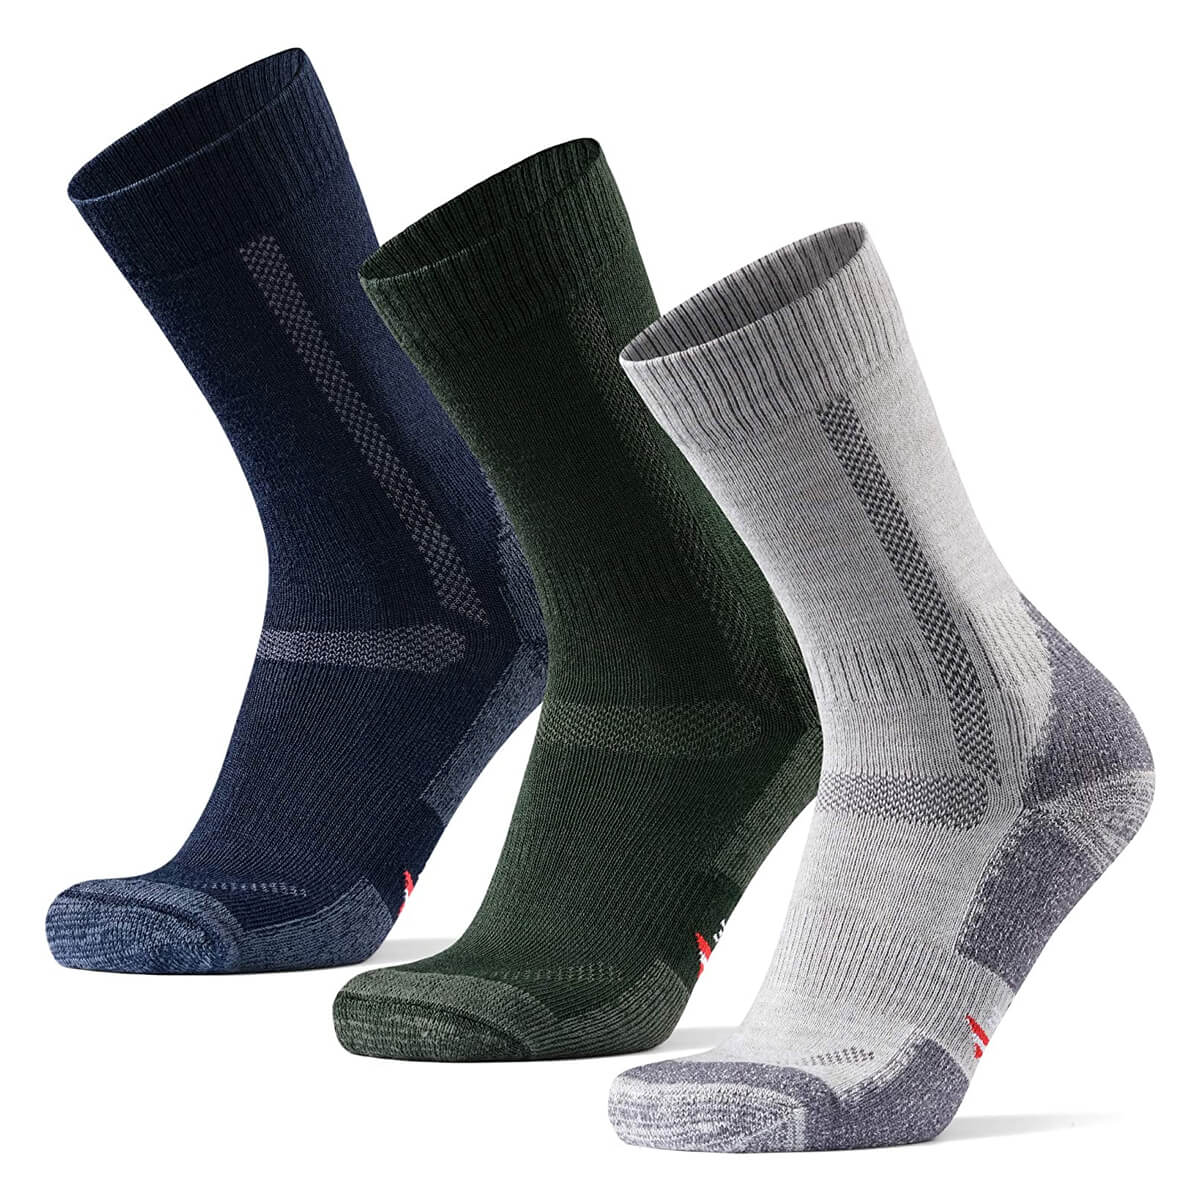 Danish Endurance Merino Wool Socks